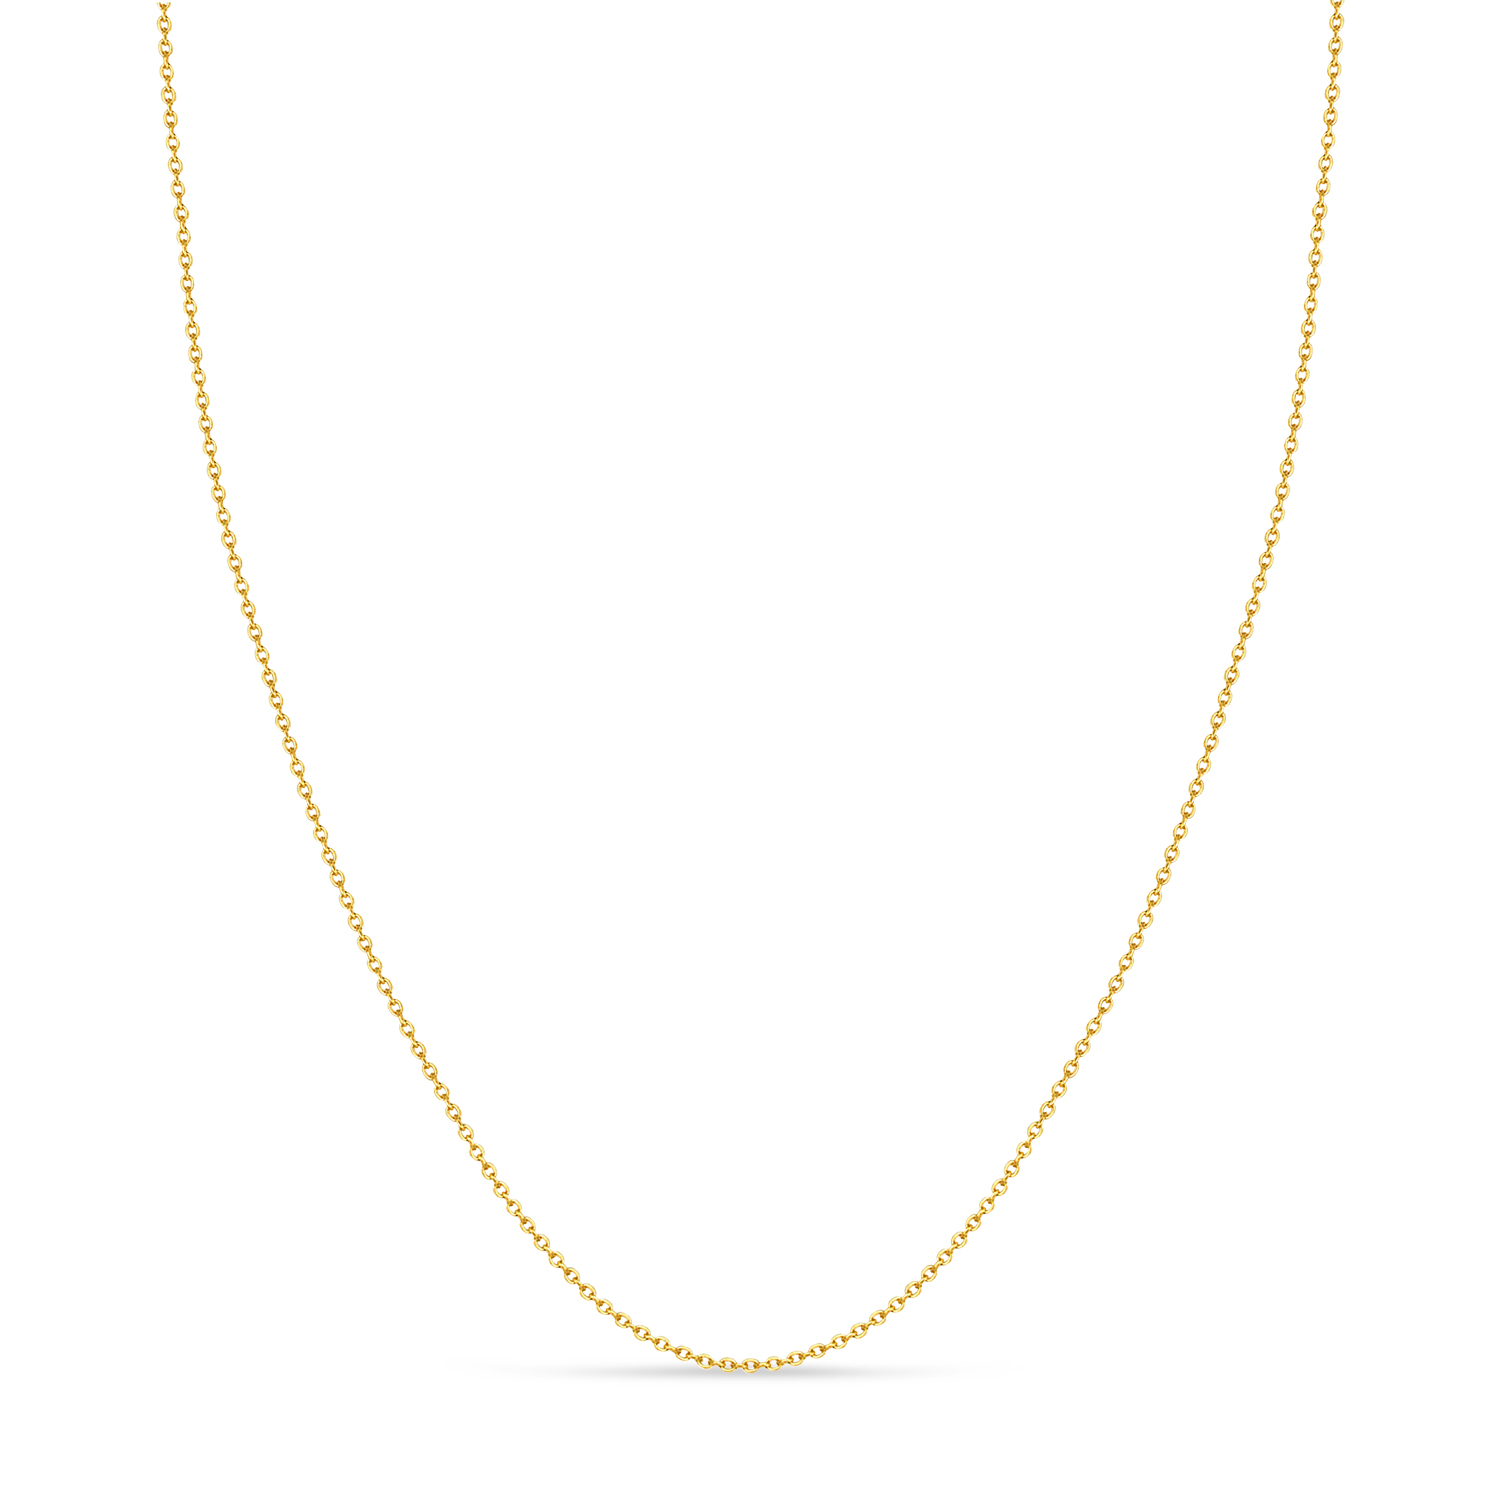 Cable Chain Necklace With Lobster Lock 14k Yellow Gold